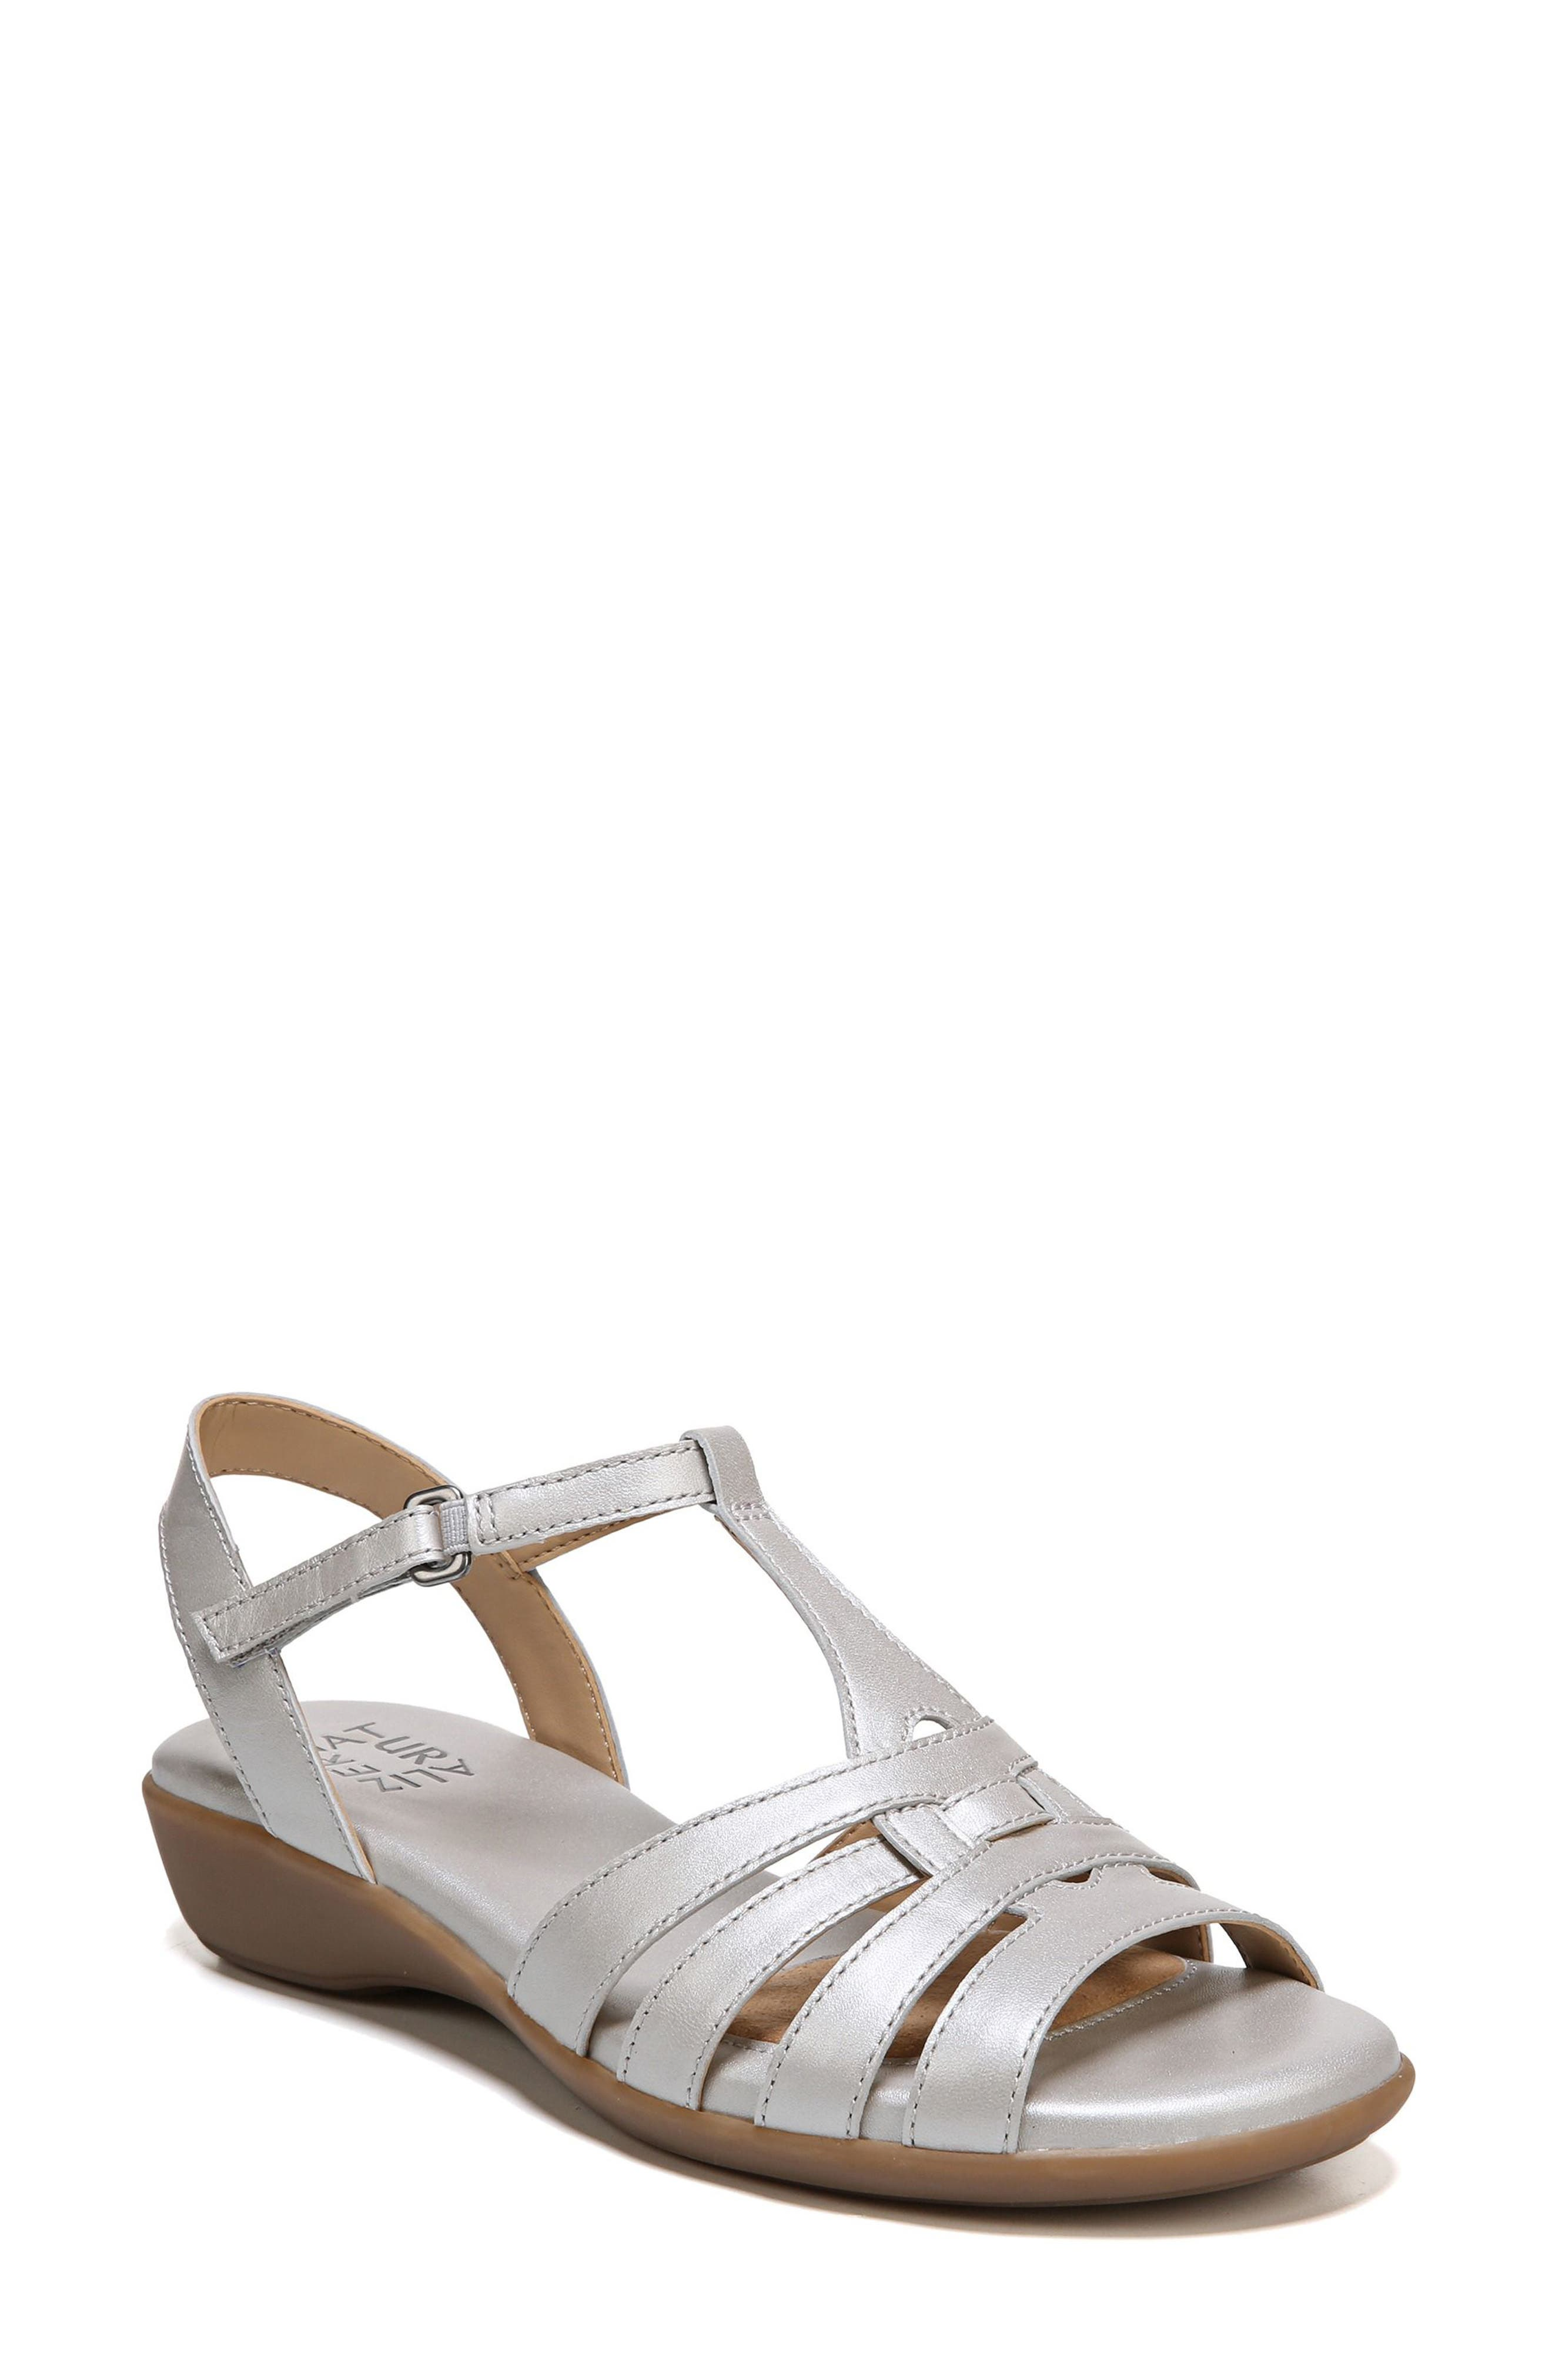 Alternate Image 1 Selected - Naturalizer Nanci Sandal (Women)